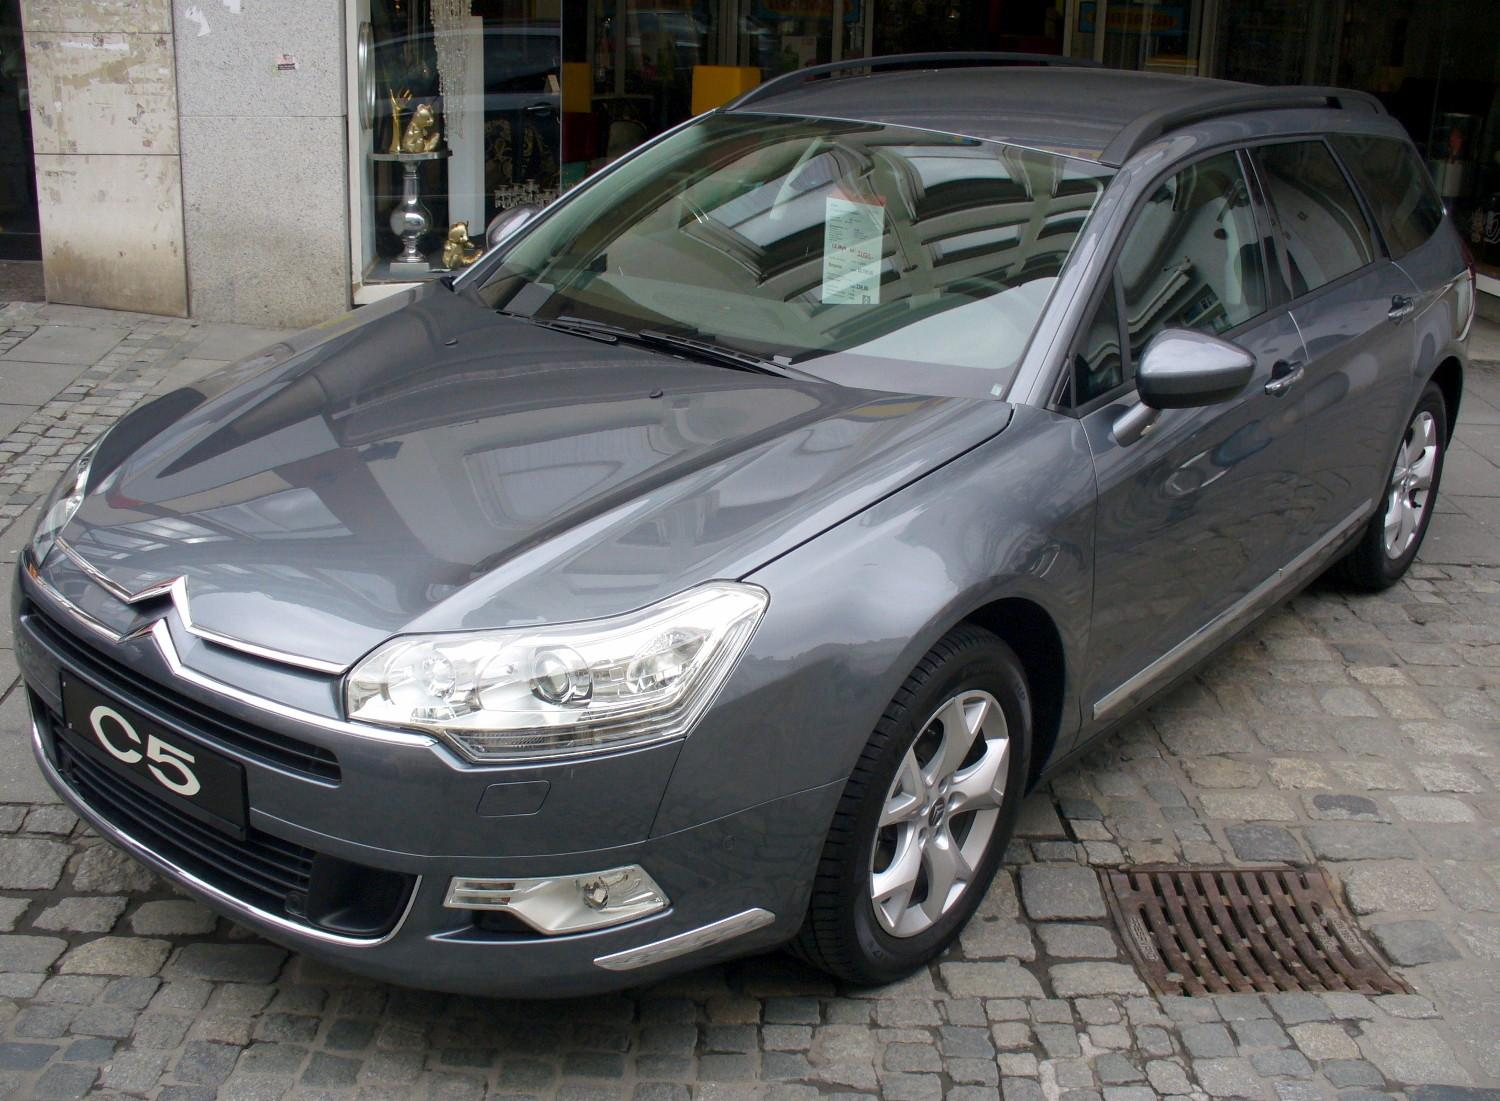 citroen wallpaper (Citroen C5 Tourer)